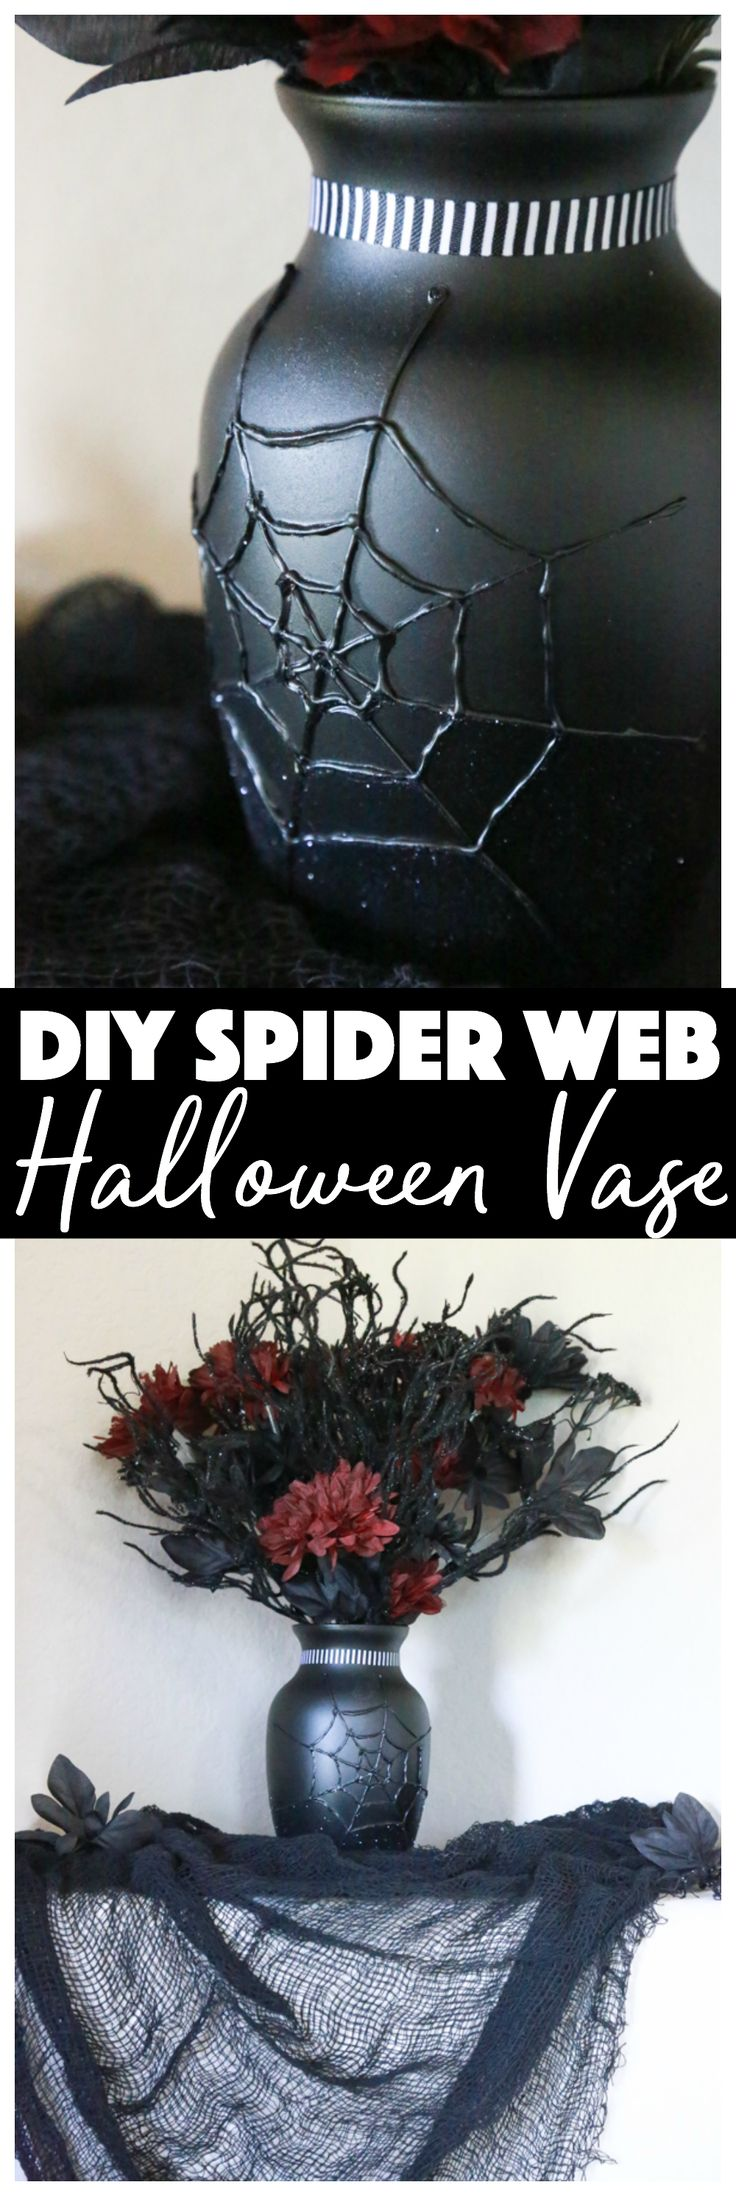 See how I transformed a $1 dollar store vase into a eerily beautiful DIY Spider Web Halloween Vase. via @simplymommy